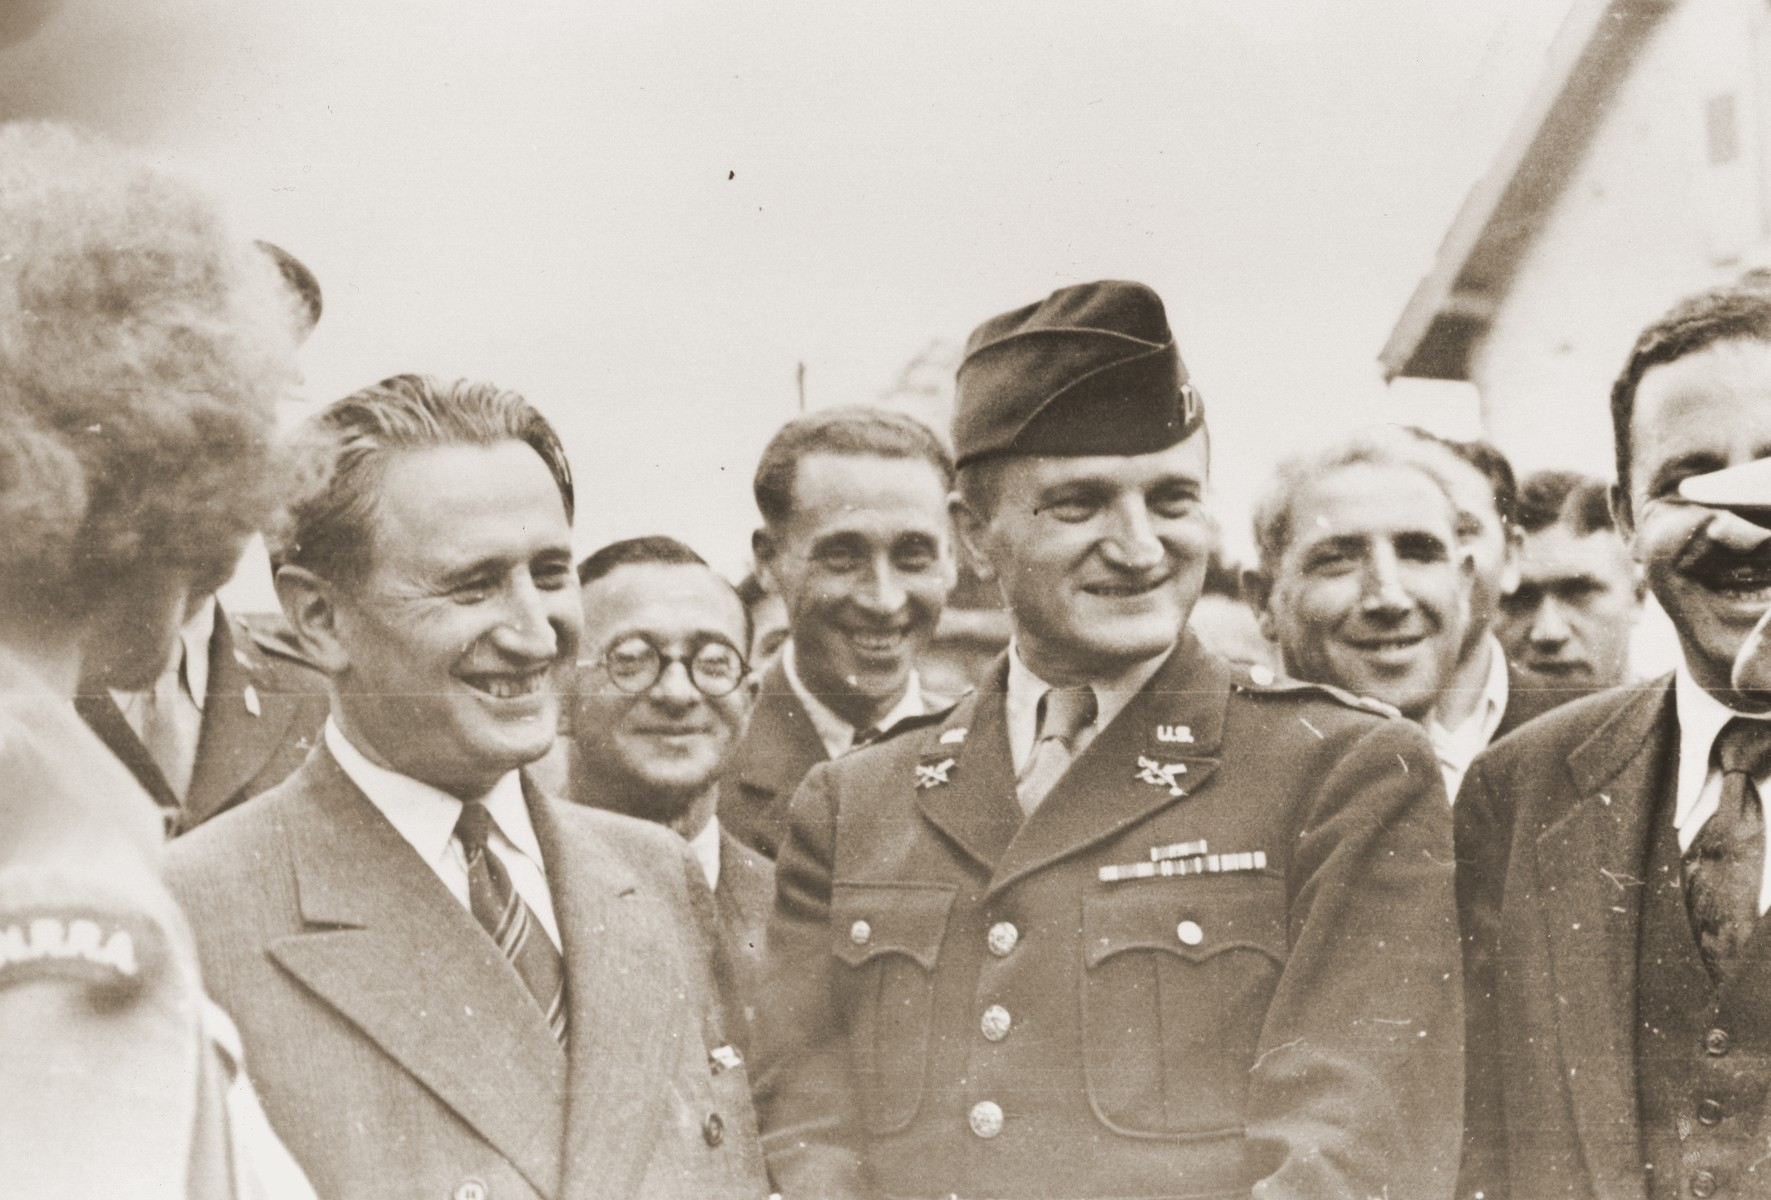 Nahum Goldmann, chairman of the executive council of the World Jewish Congress, is escorted through the Lampertheim displaced persons camp by Captain Abraham Hyman (center in uniform) and Mathilde Oftedal (left).